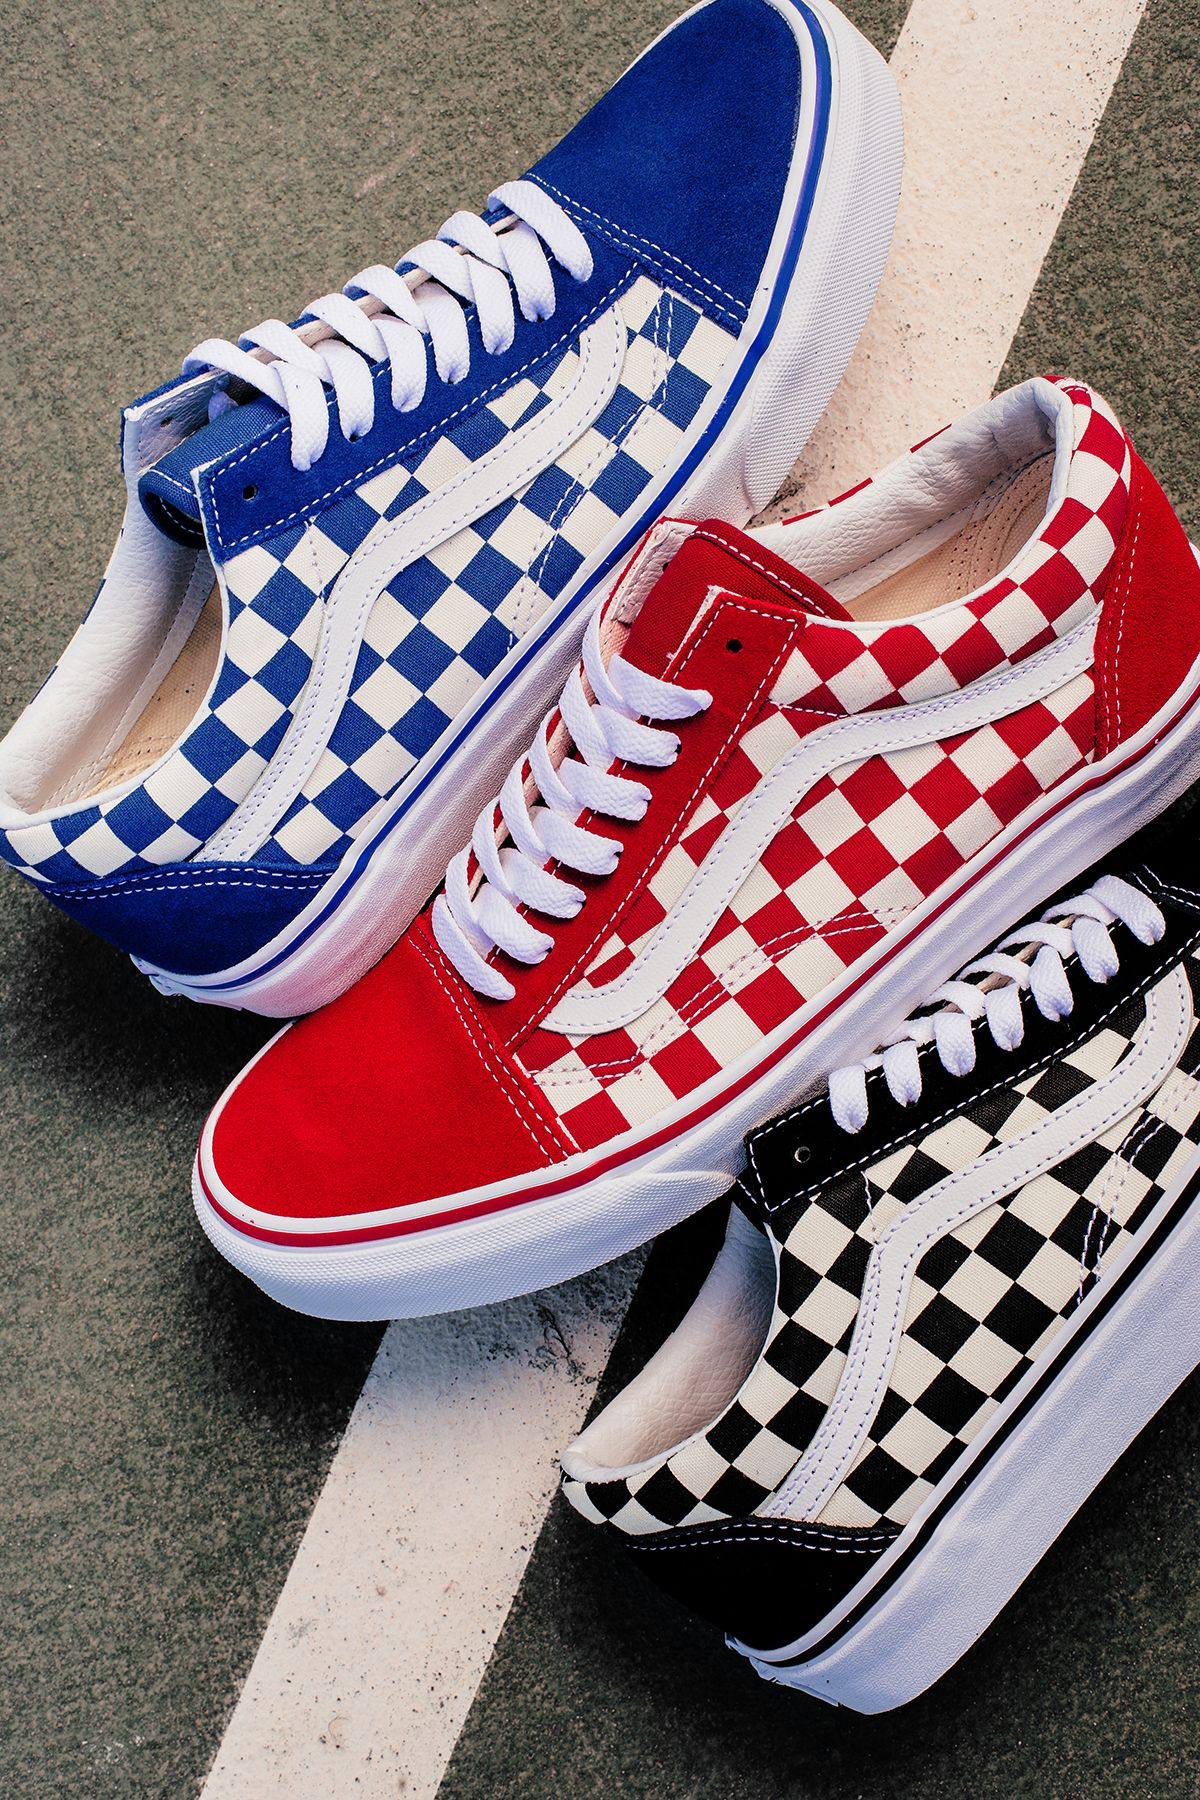 Vans Primary Check Old Skool Pack Vans Shoes Cute Shoes Shoes